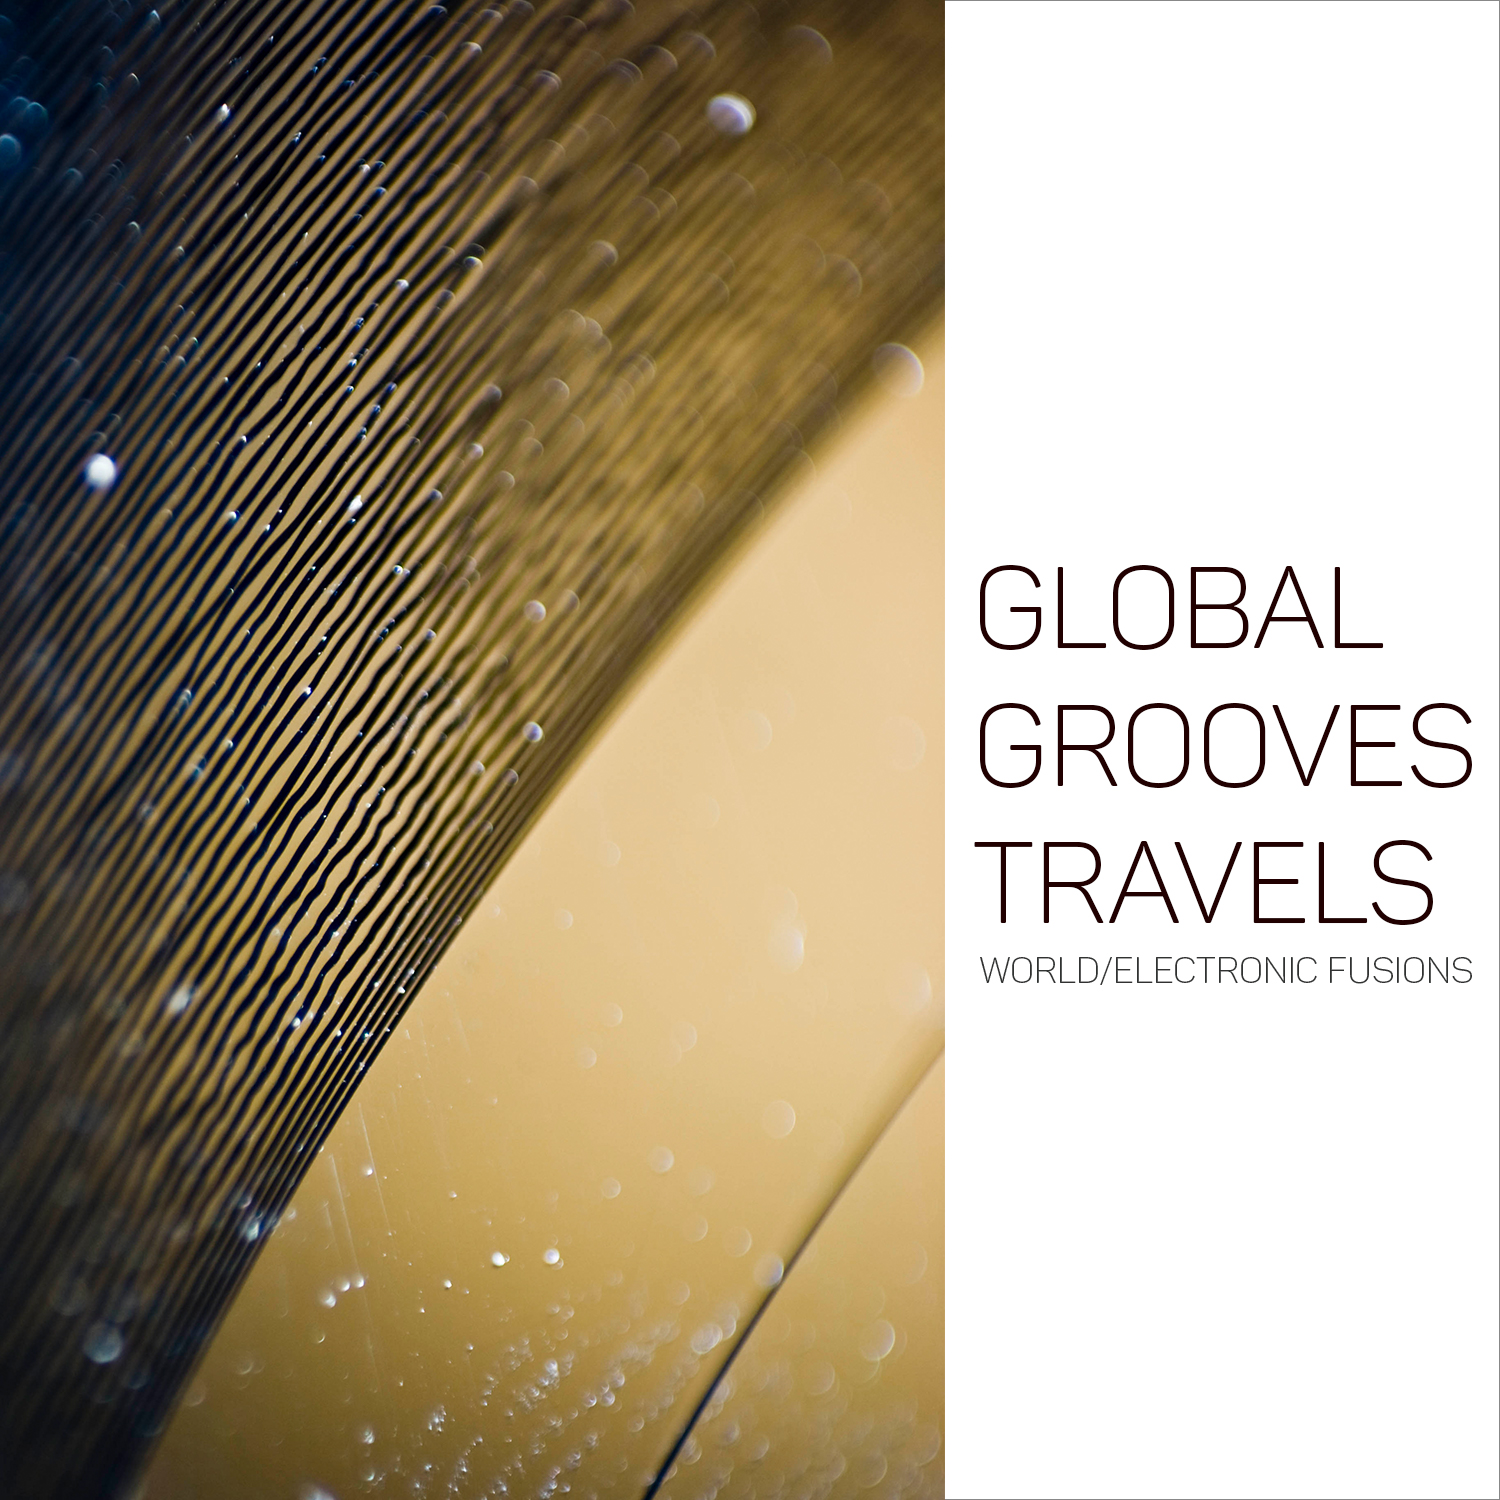 Global Grooves Travels (World/Electronic Fusions)